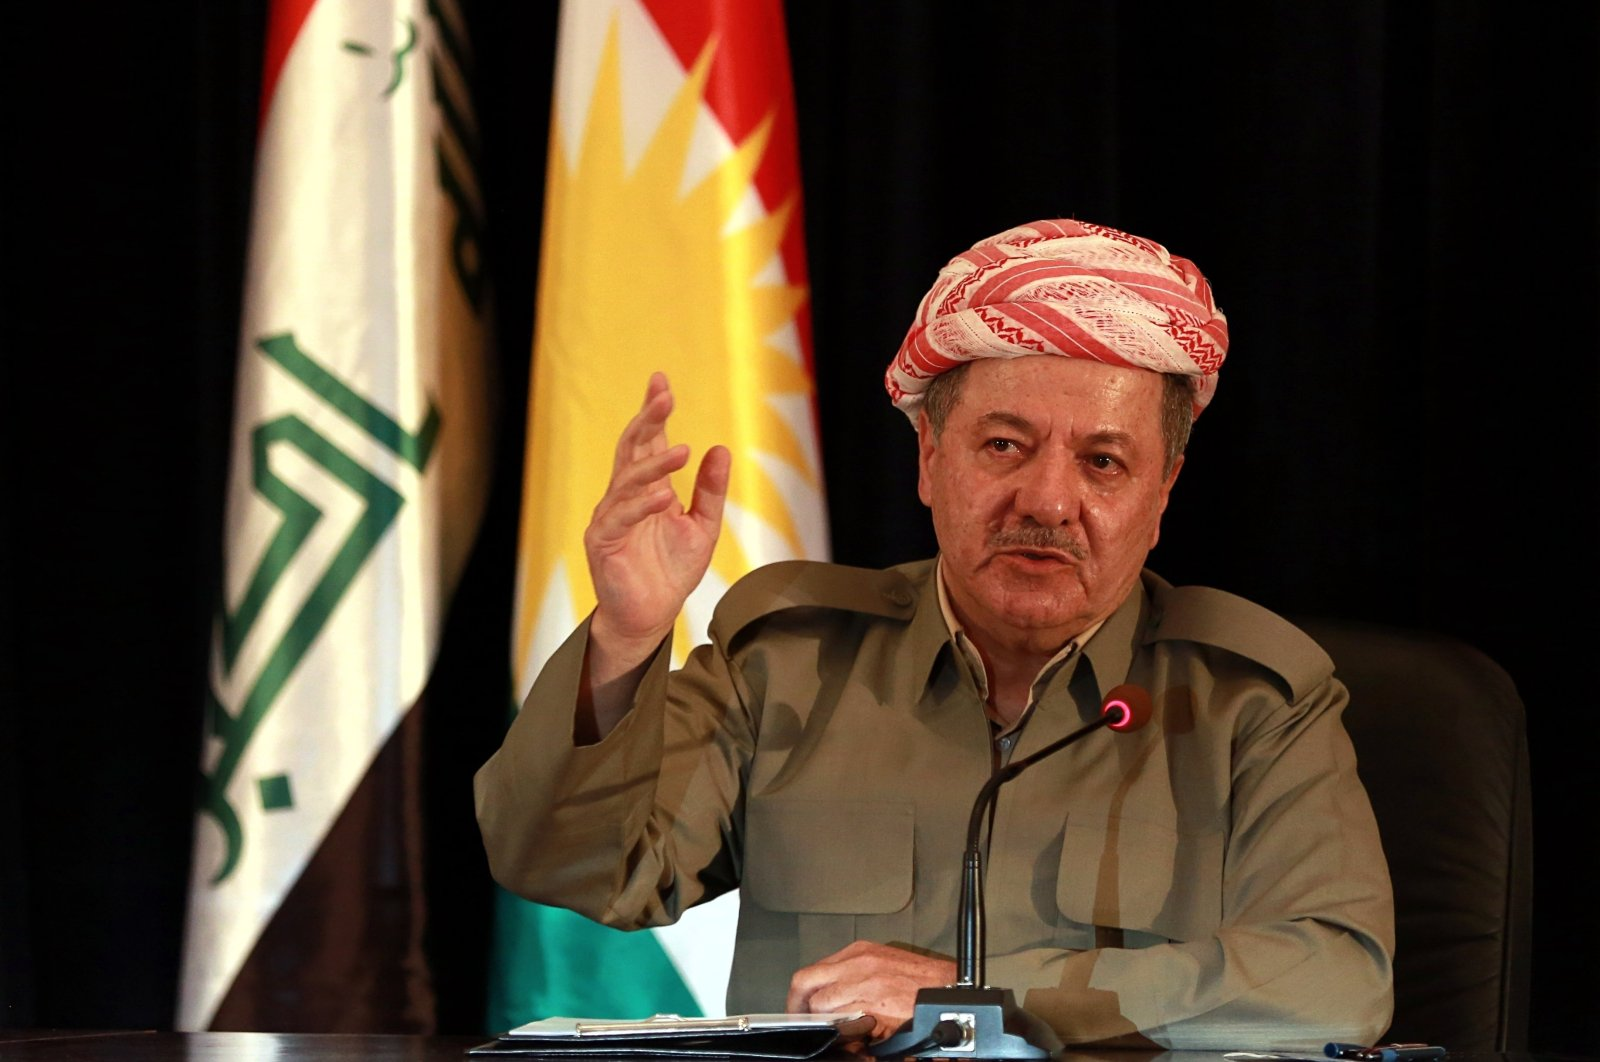 In this file photo, the then-president of Iraq's autonomous Kurdish region, Massoud Barzani, speaks to reporters during a news conference in Irbil, Iraq, Sept. 24, 2017. (AP File Photo)